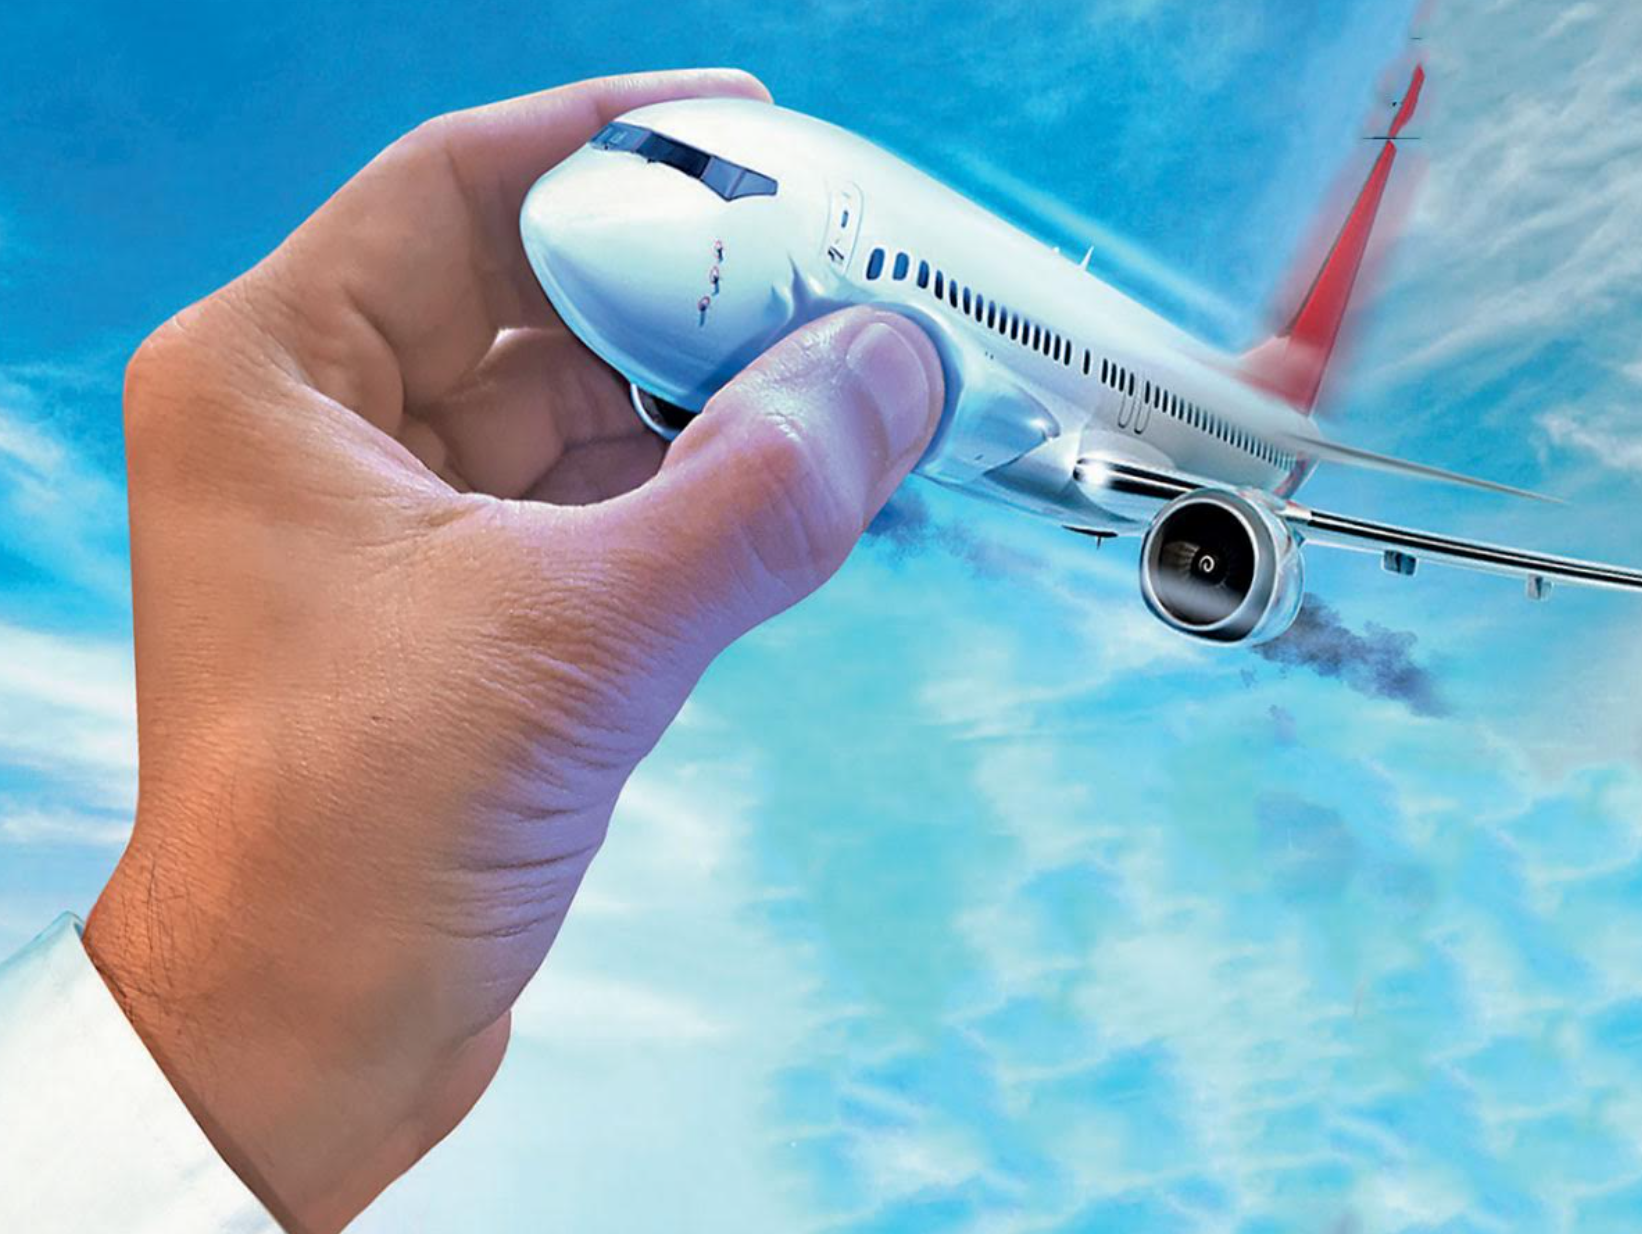 Cutting off air: Is the government doing enough to resuscitate the aviation industry?